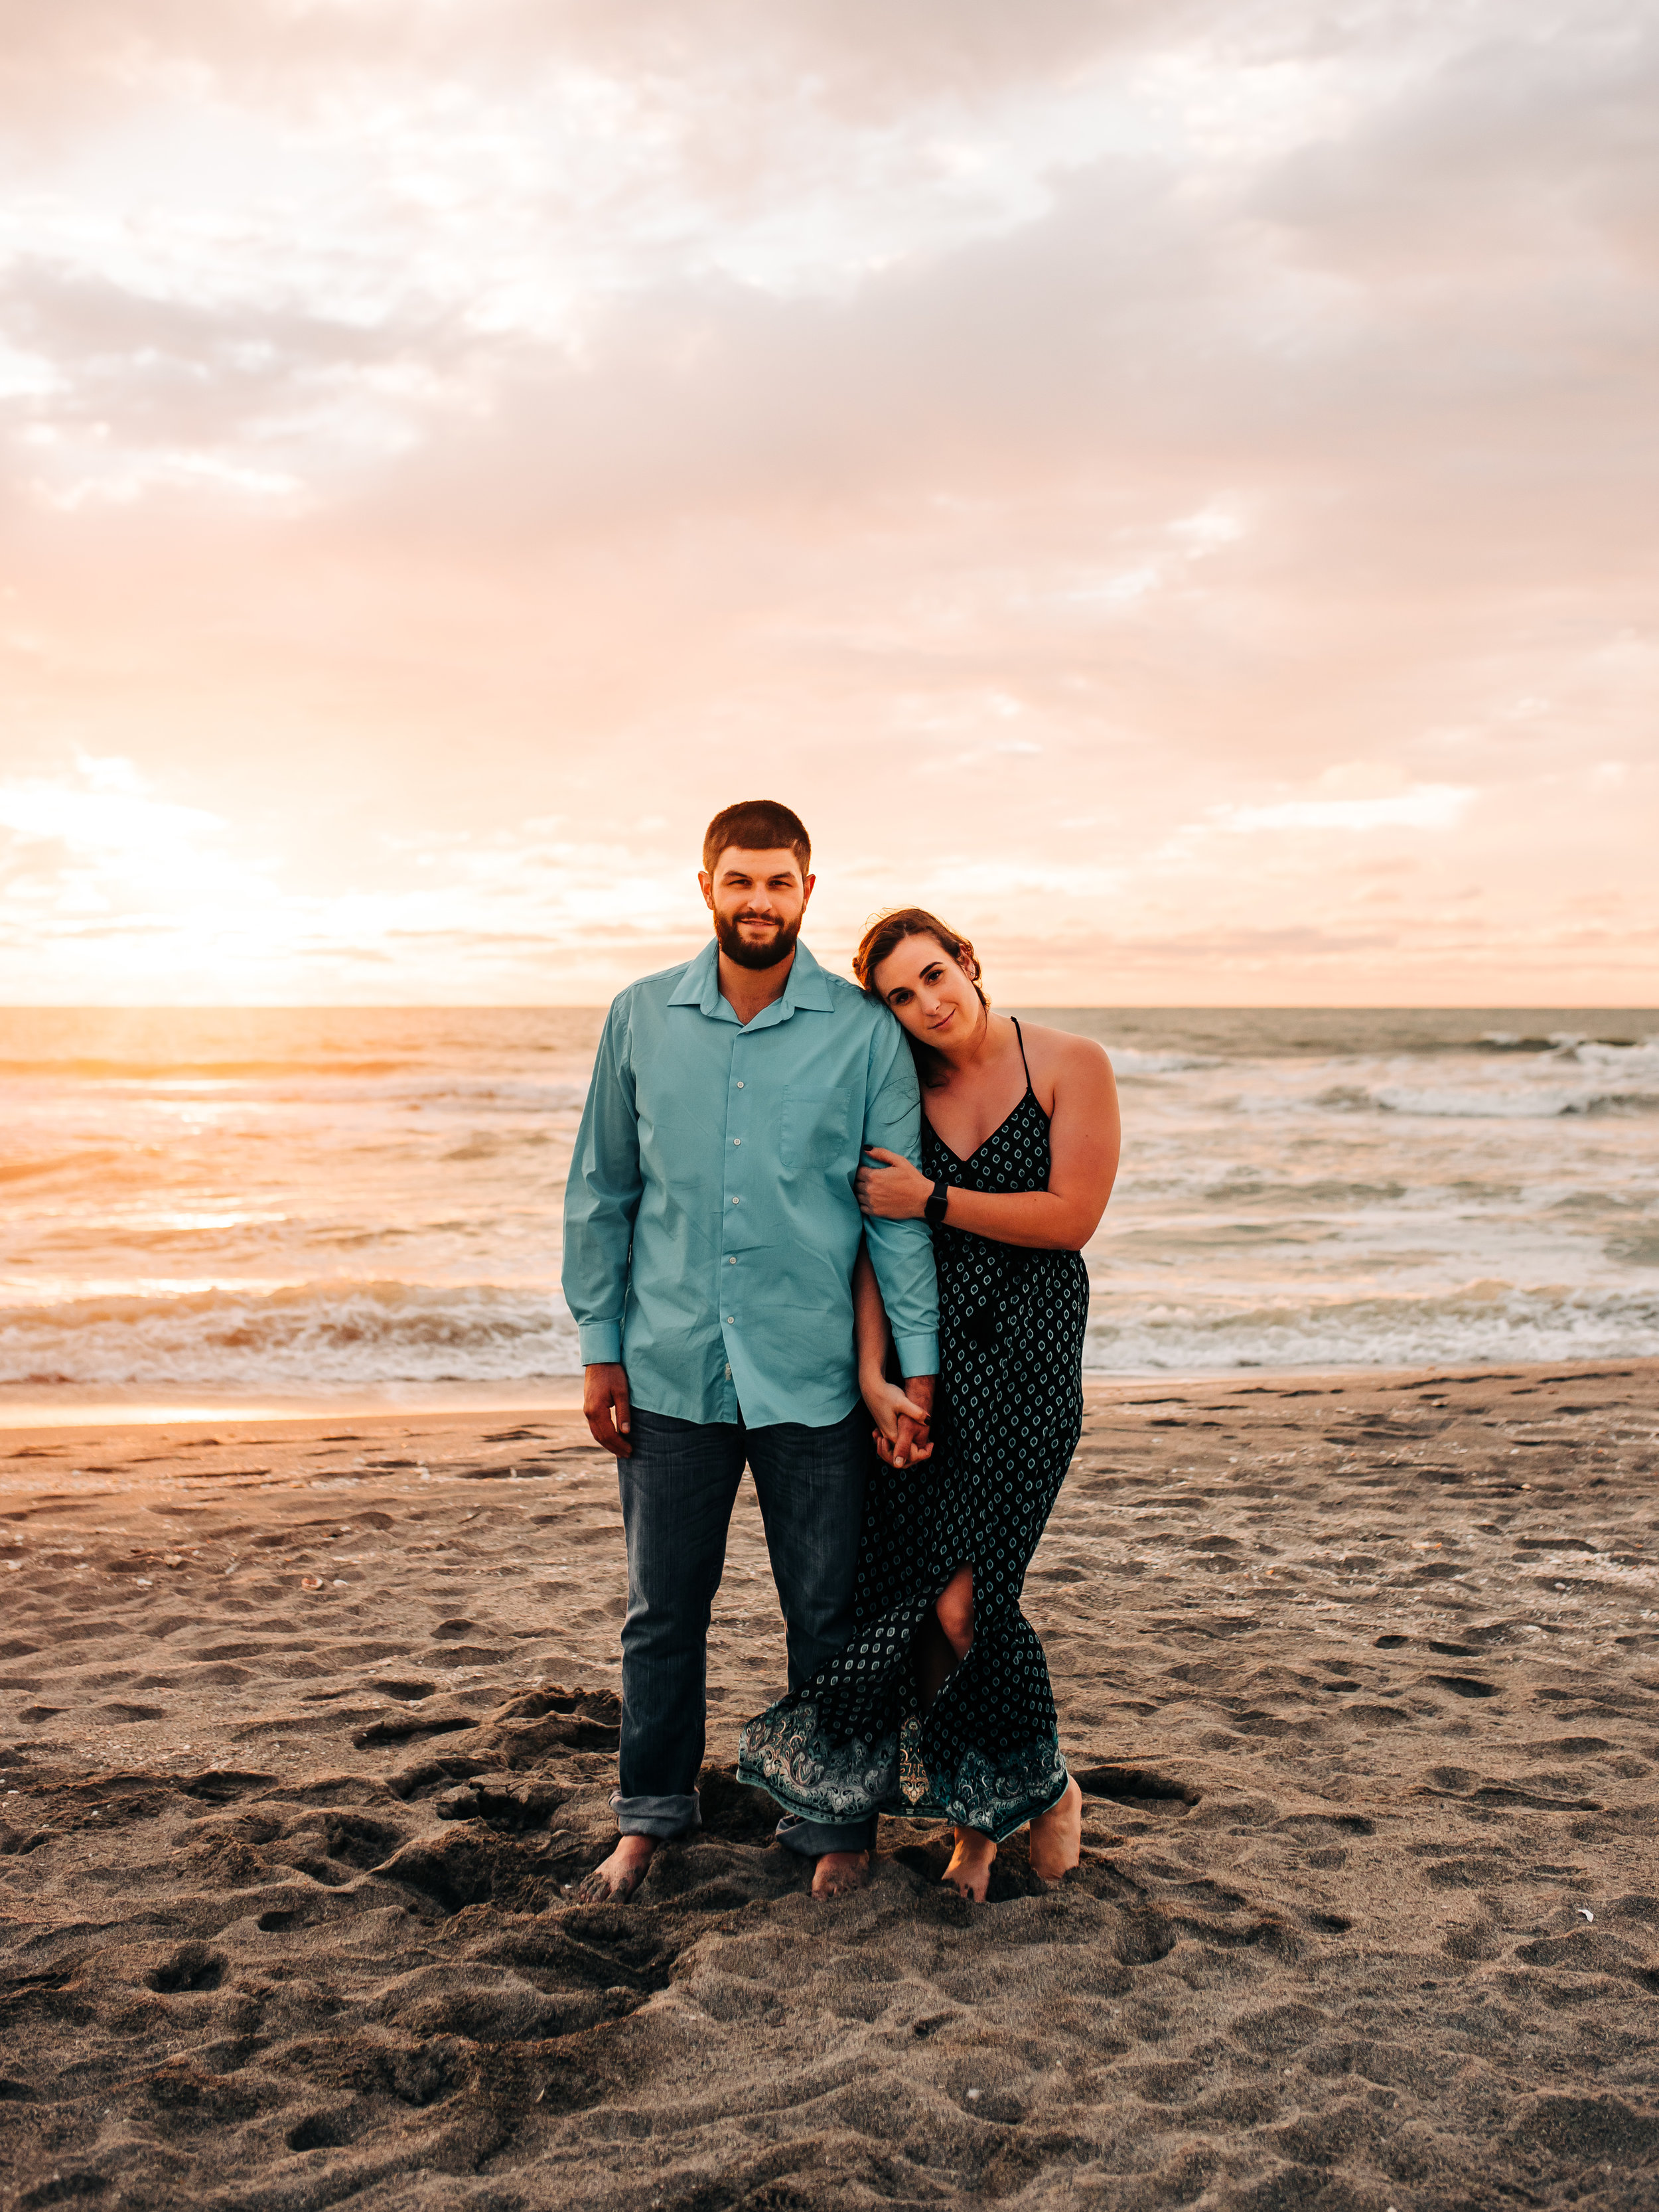 """Christine - """"Cheyenne is the most comfortable photographer to shoot with! She makes your experience and session so enjoyable!!! She captures the best moments with your loved ones and creates the best memories!"""""""